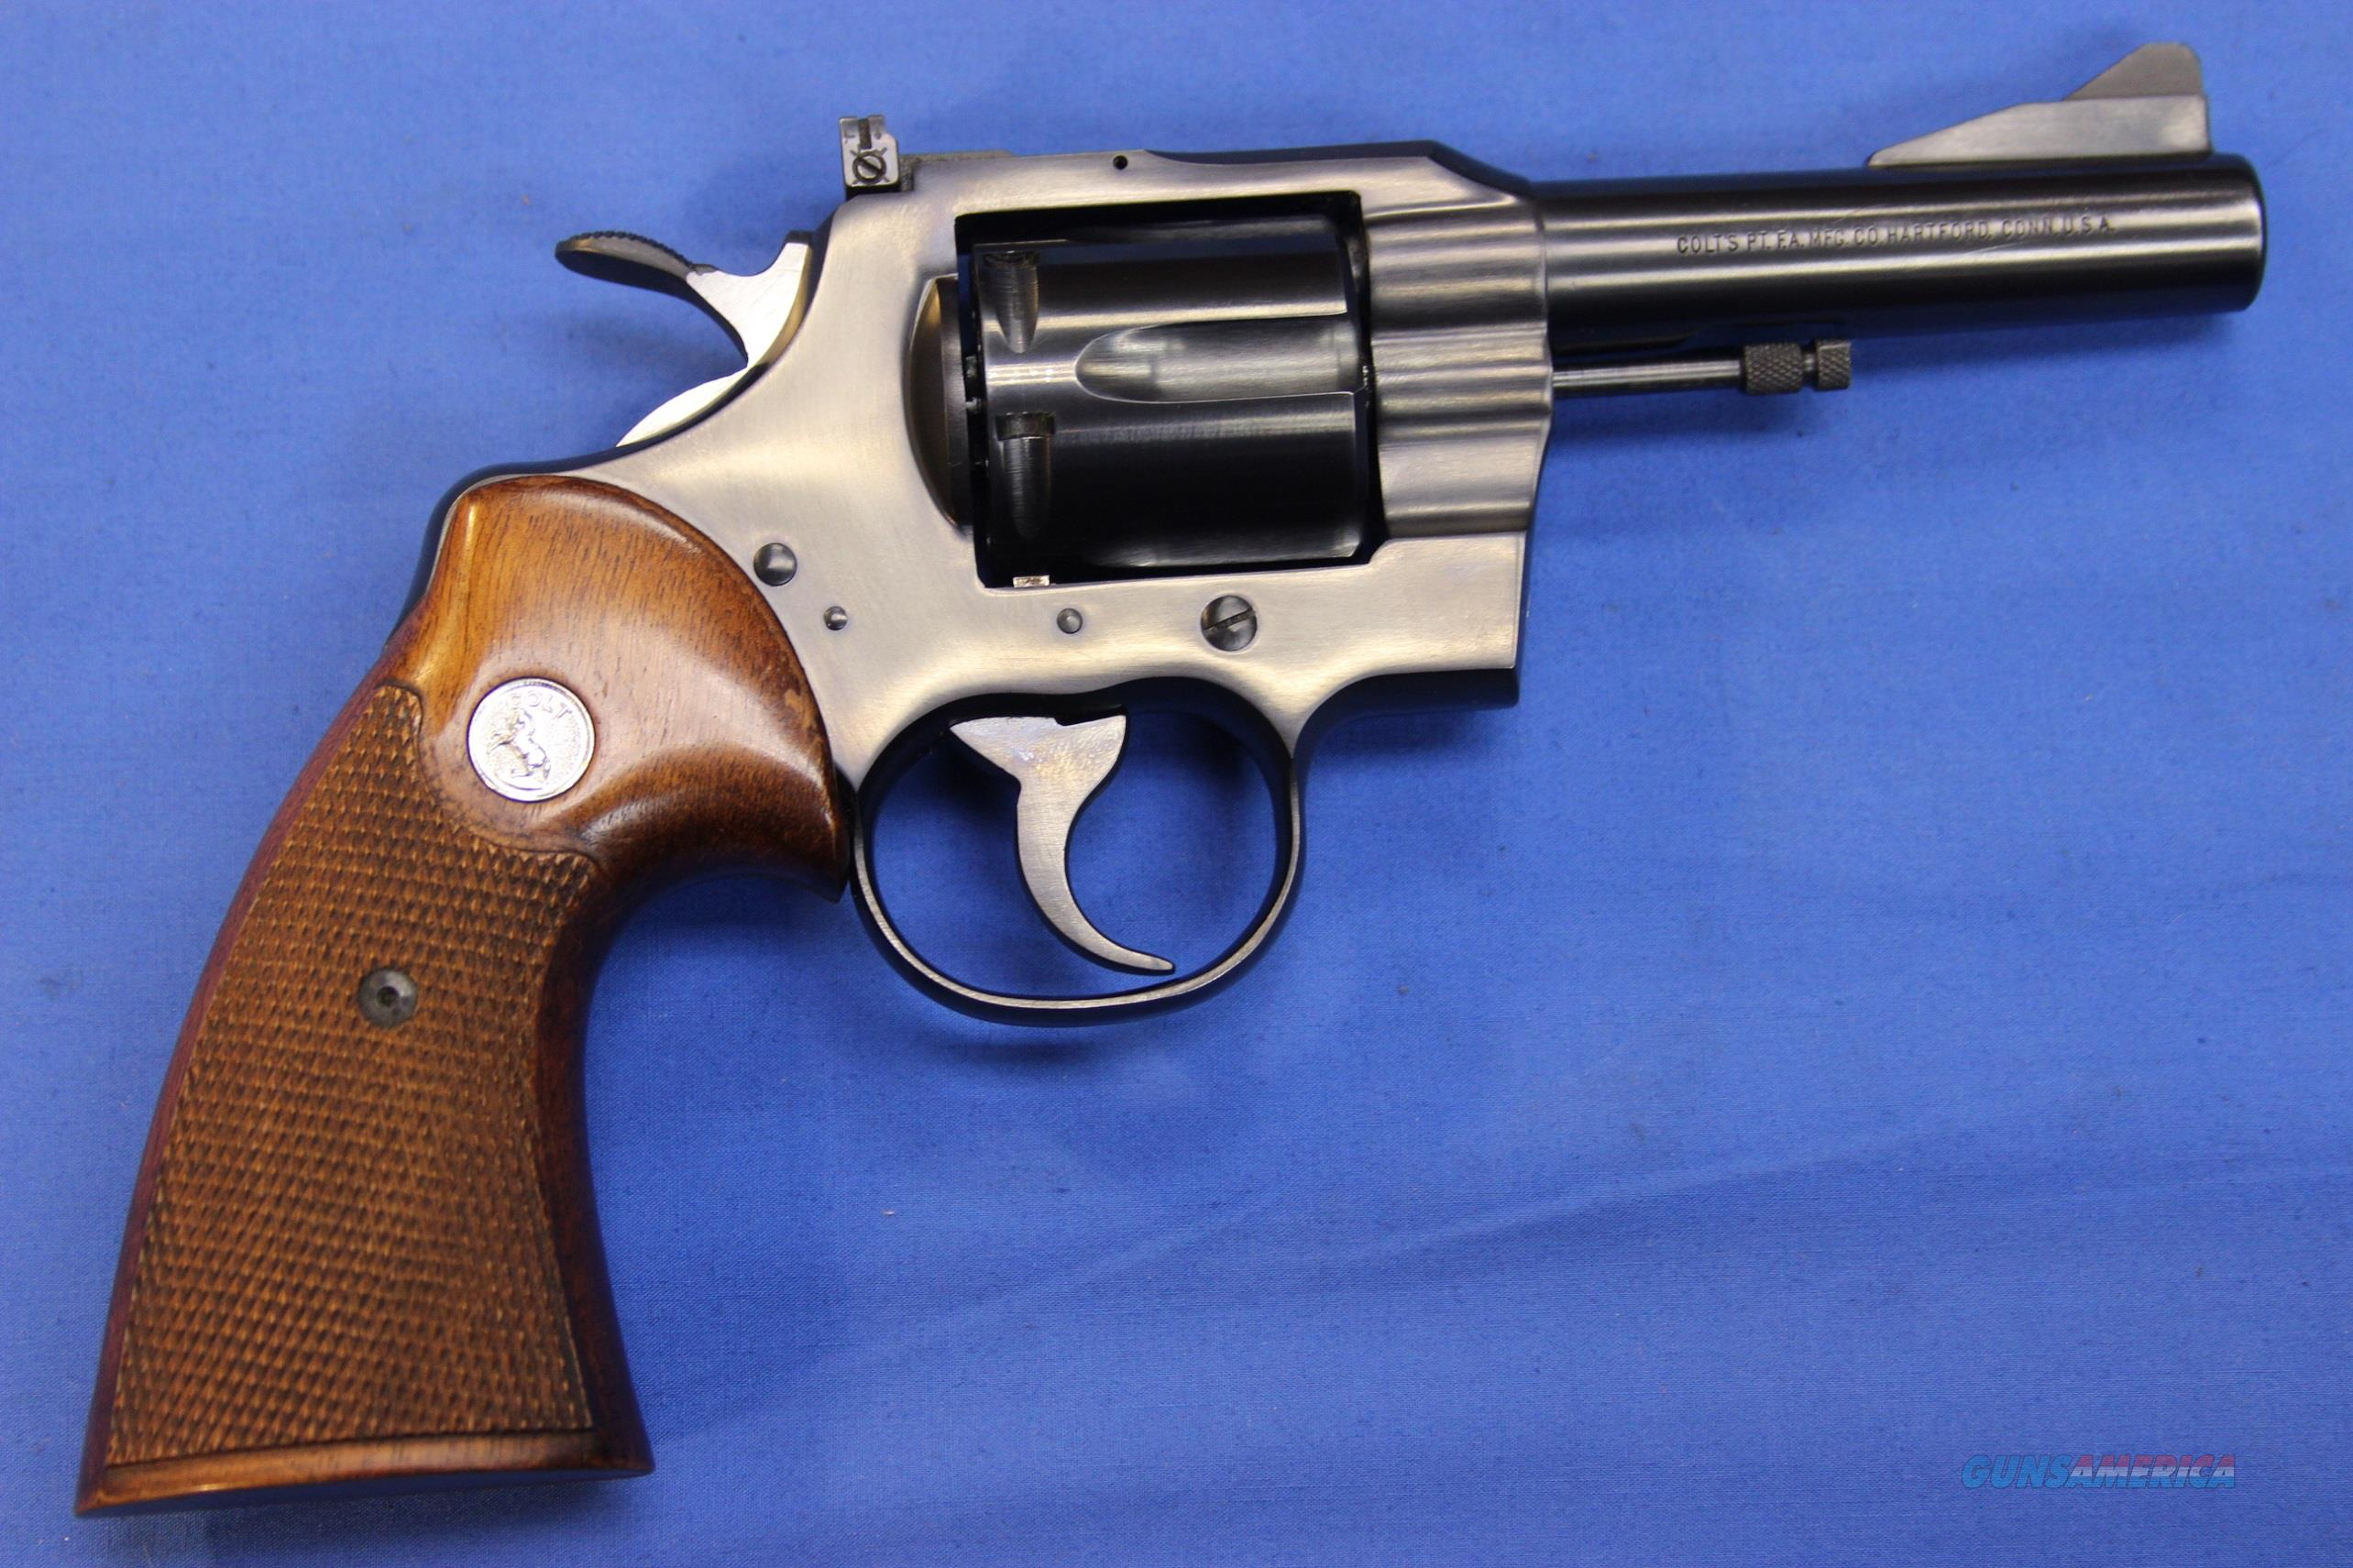 COLT TROOPER .357 MAGNUM w/ BOX  Guns > Pistols > Colt Double Action Revolvers- Modern